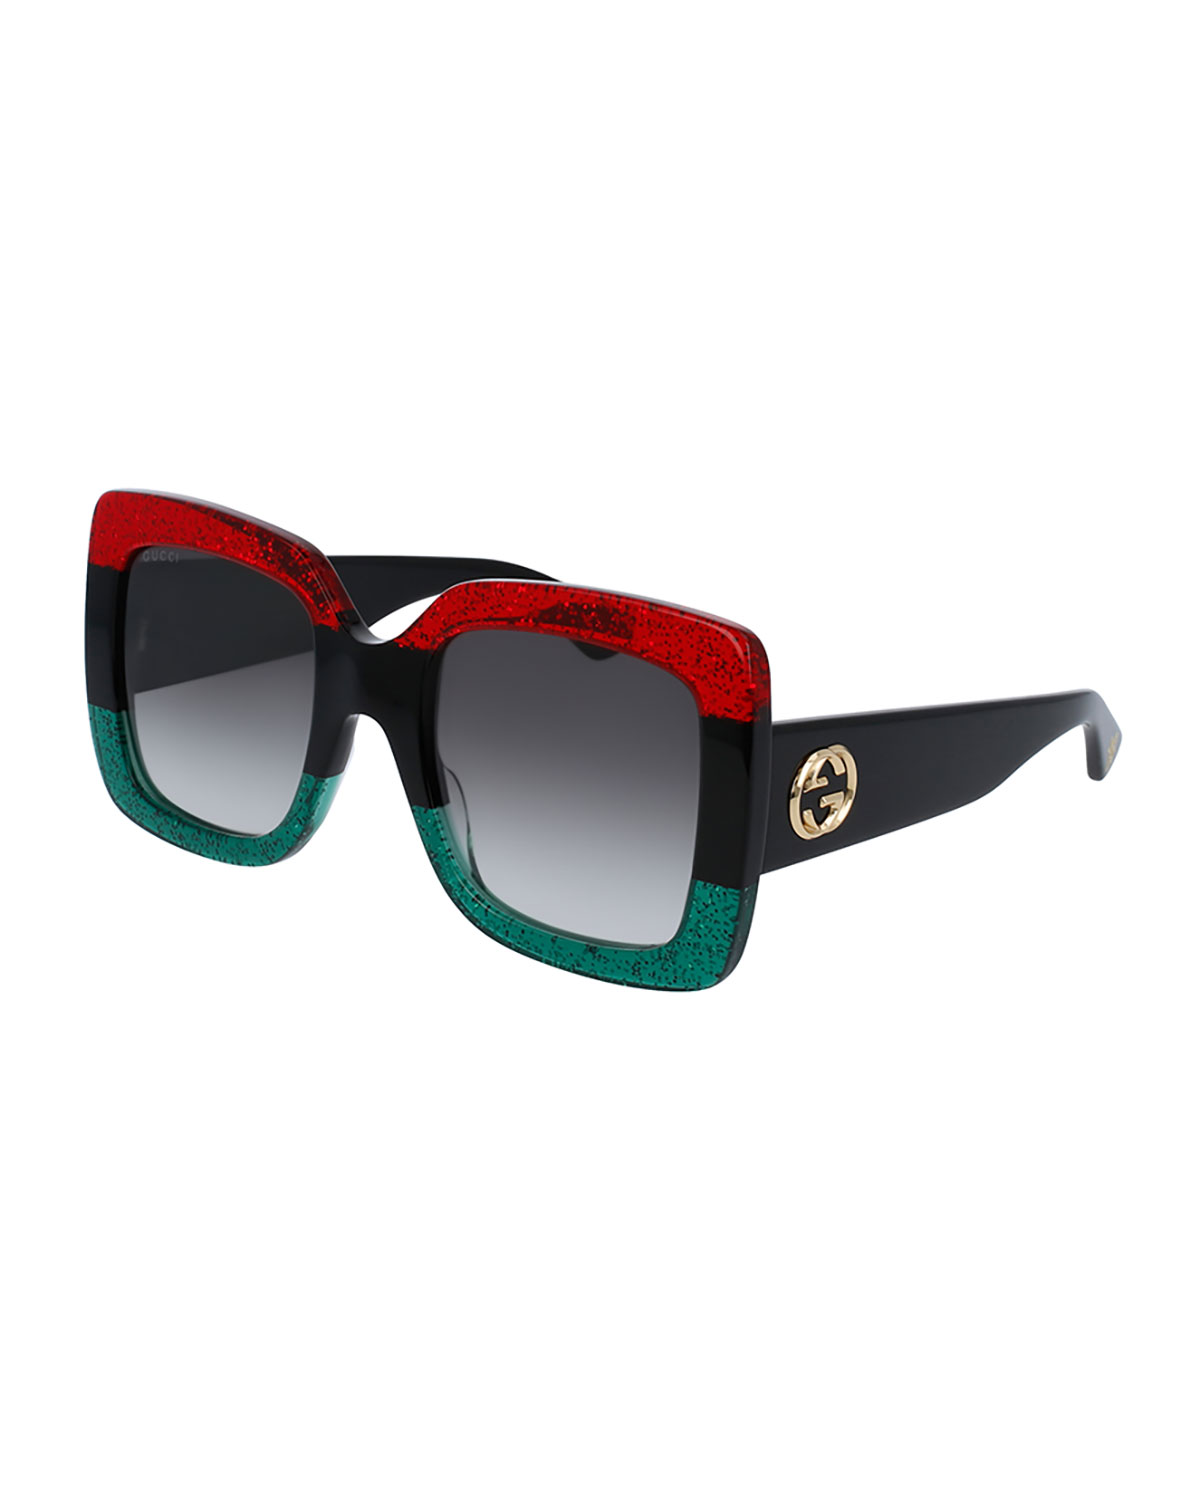 8bb3618c8d Gucci Glittered Gradient Oversized Square Sunglasses